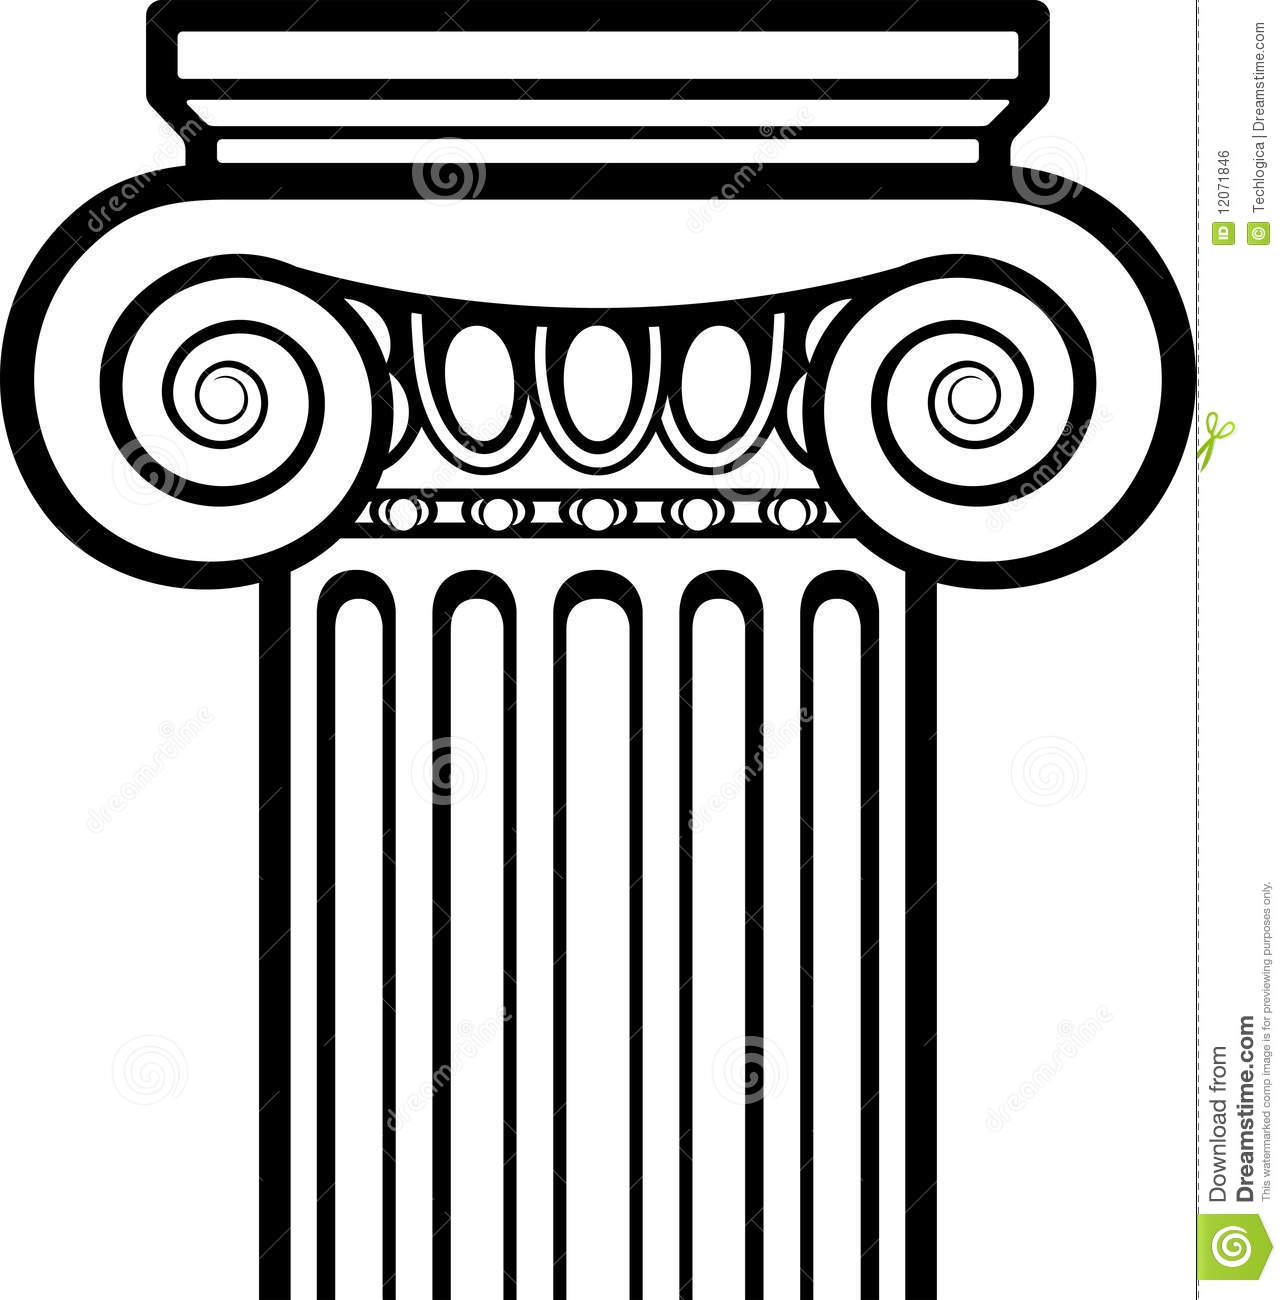 Ionic Columns Clipart.